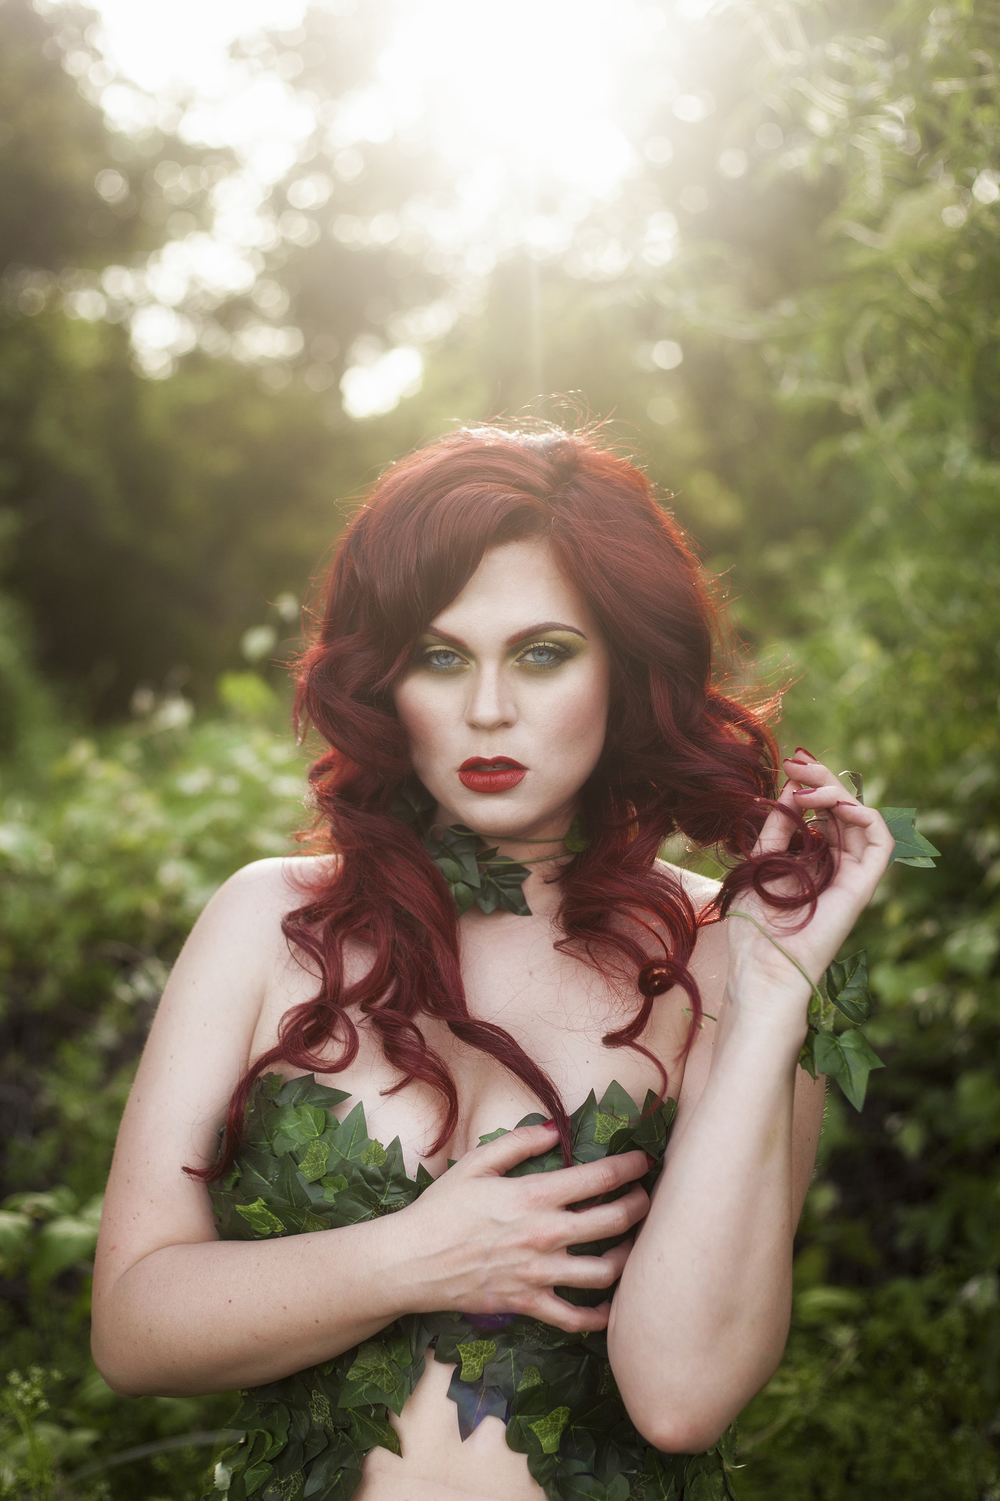 Poison Ivy Cosplay - April 2016/MUA: Kim Cook Beauty/Photo: Katelyn Elizabeth Photo.